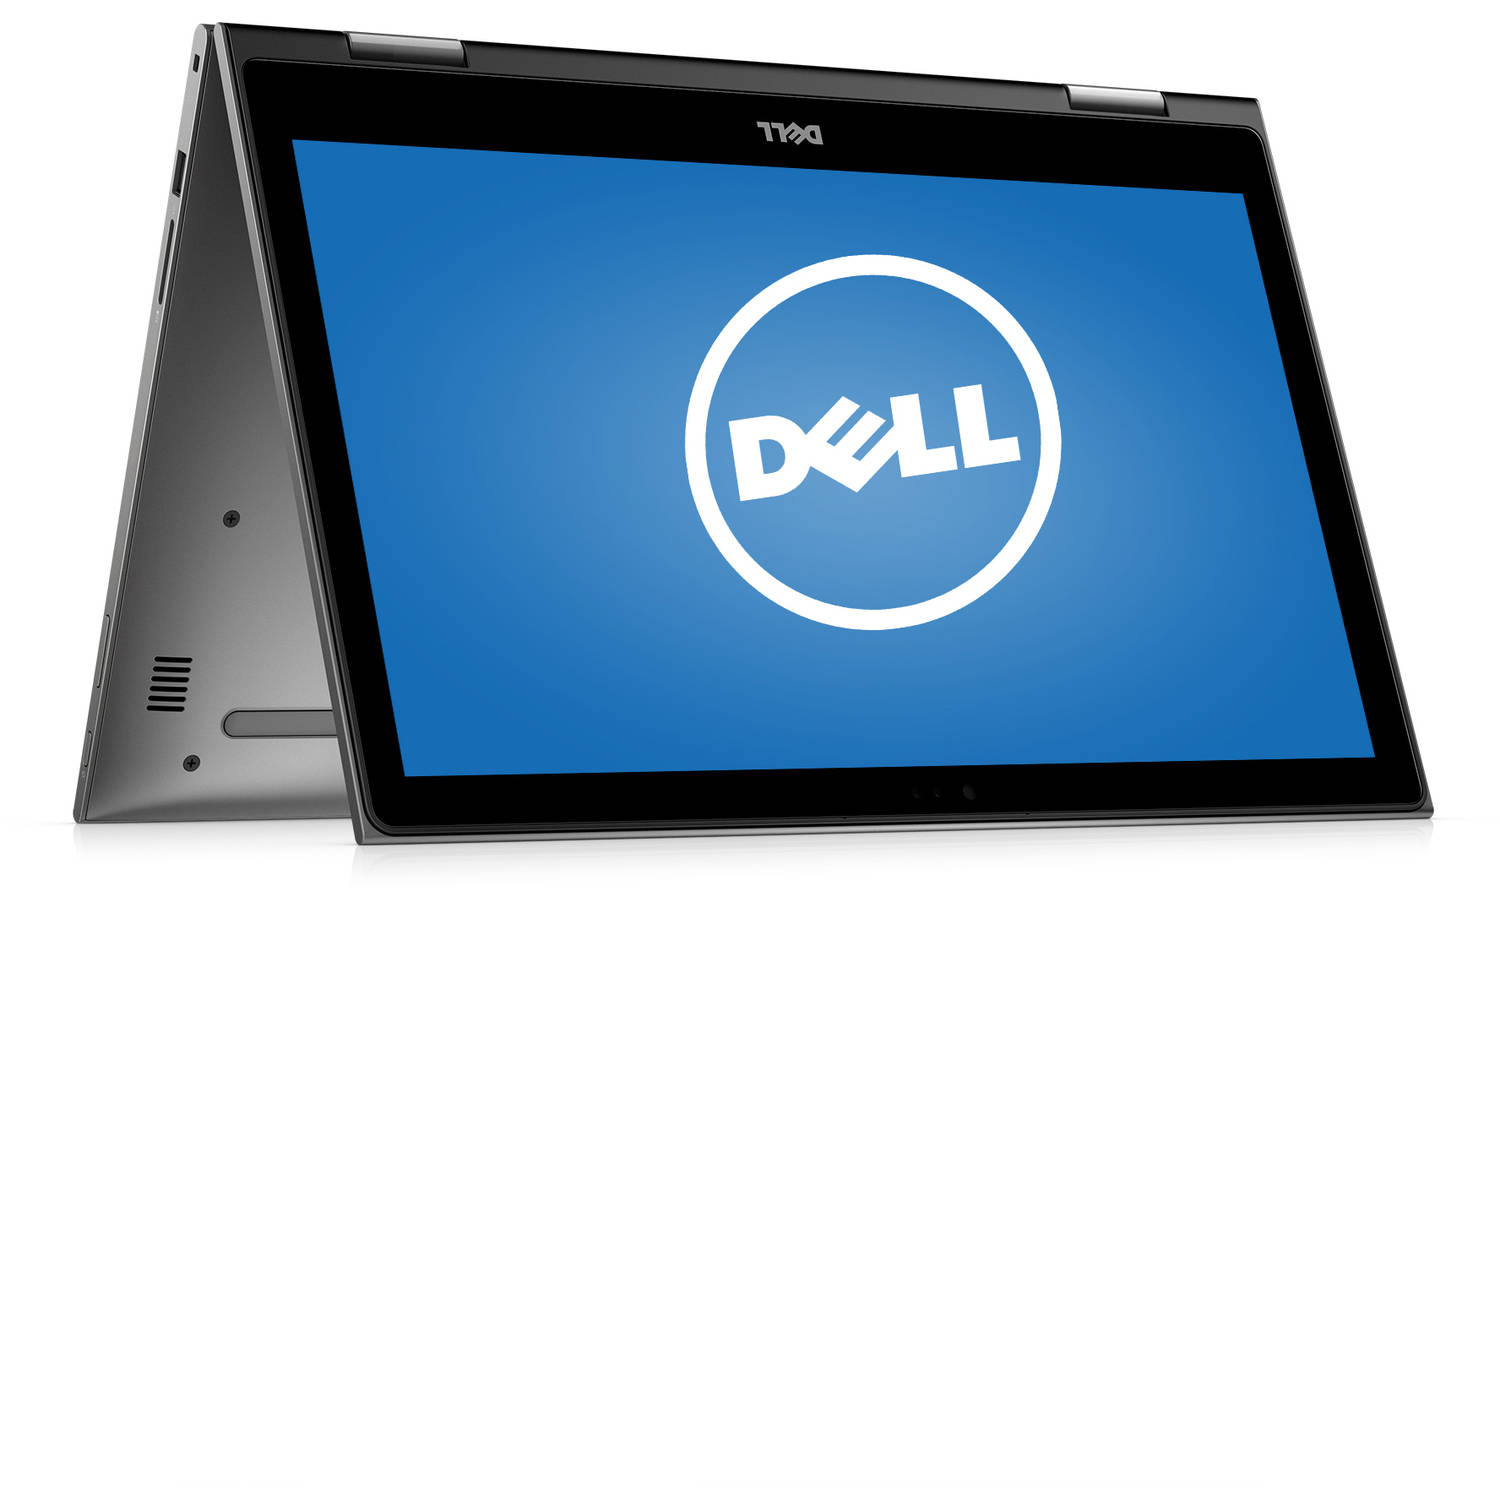 "Dell i5368-0027GRY Inspiron 13 5000 15.6"" Laptop, touch screen, 2-in-1, Windows 10 Home, Intel Core i3-6100U Processor, 4GB RAM, 500GB Hard Drive"